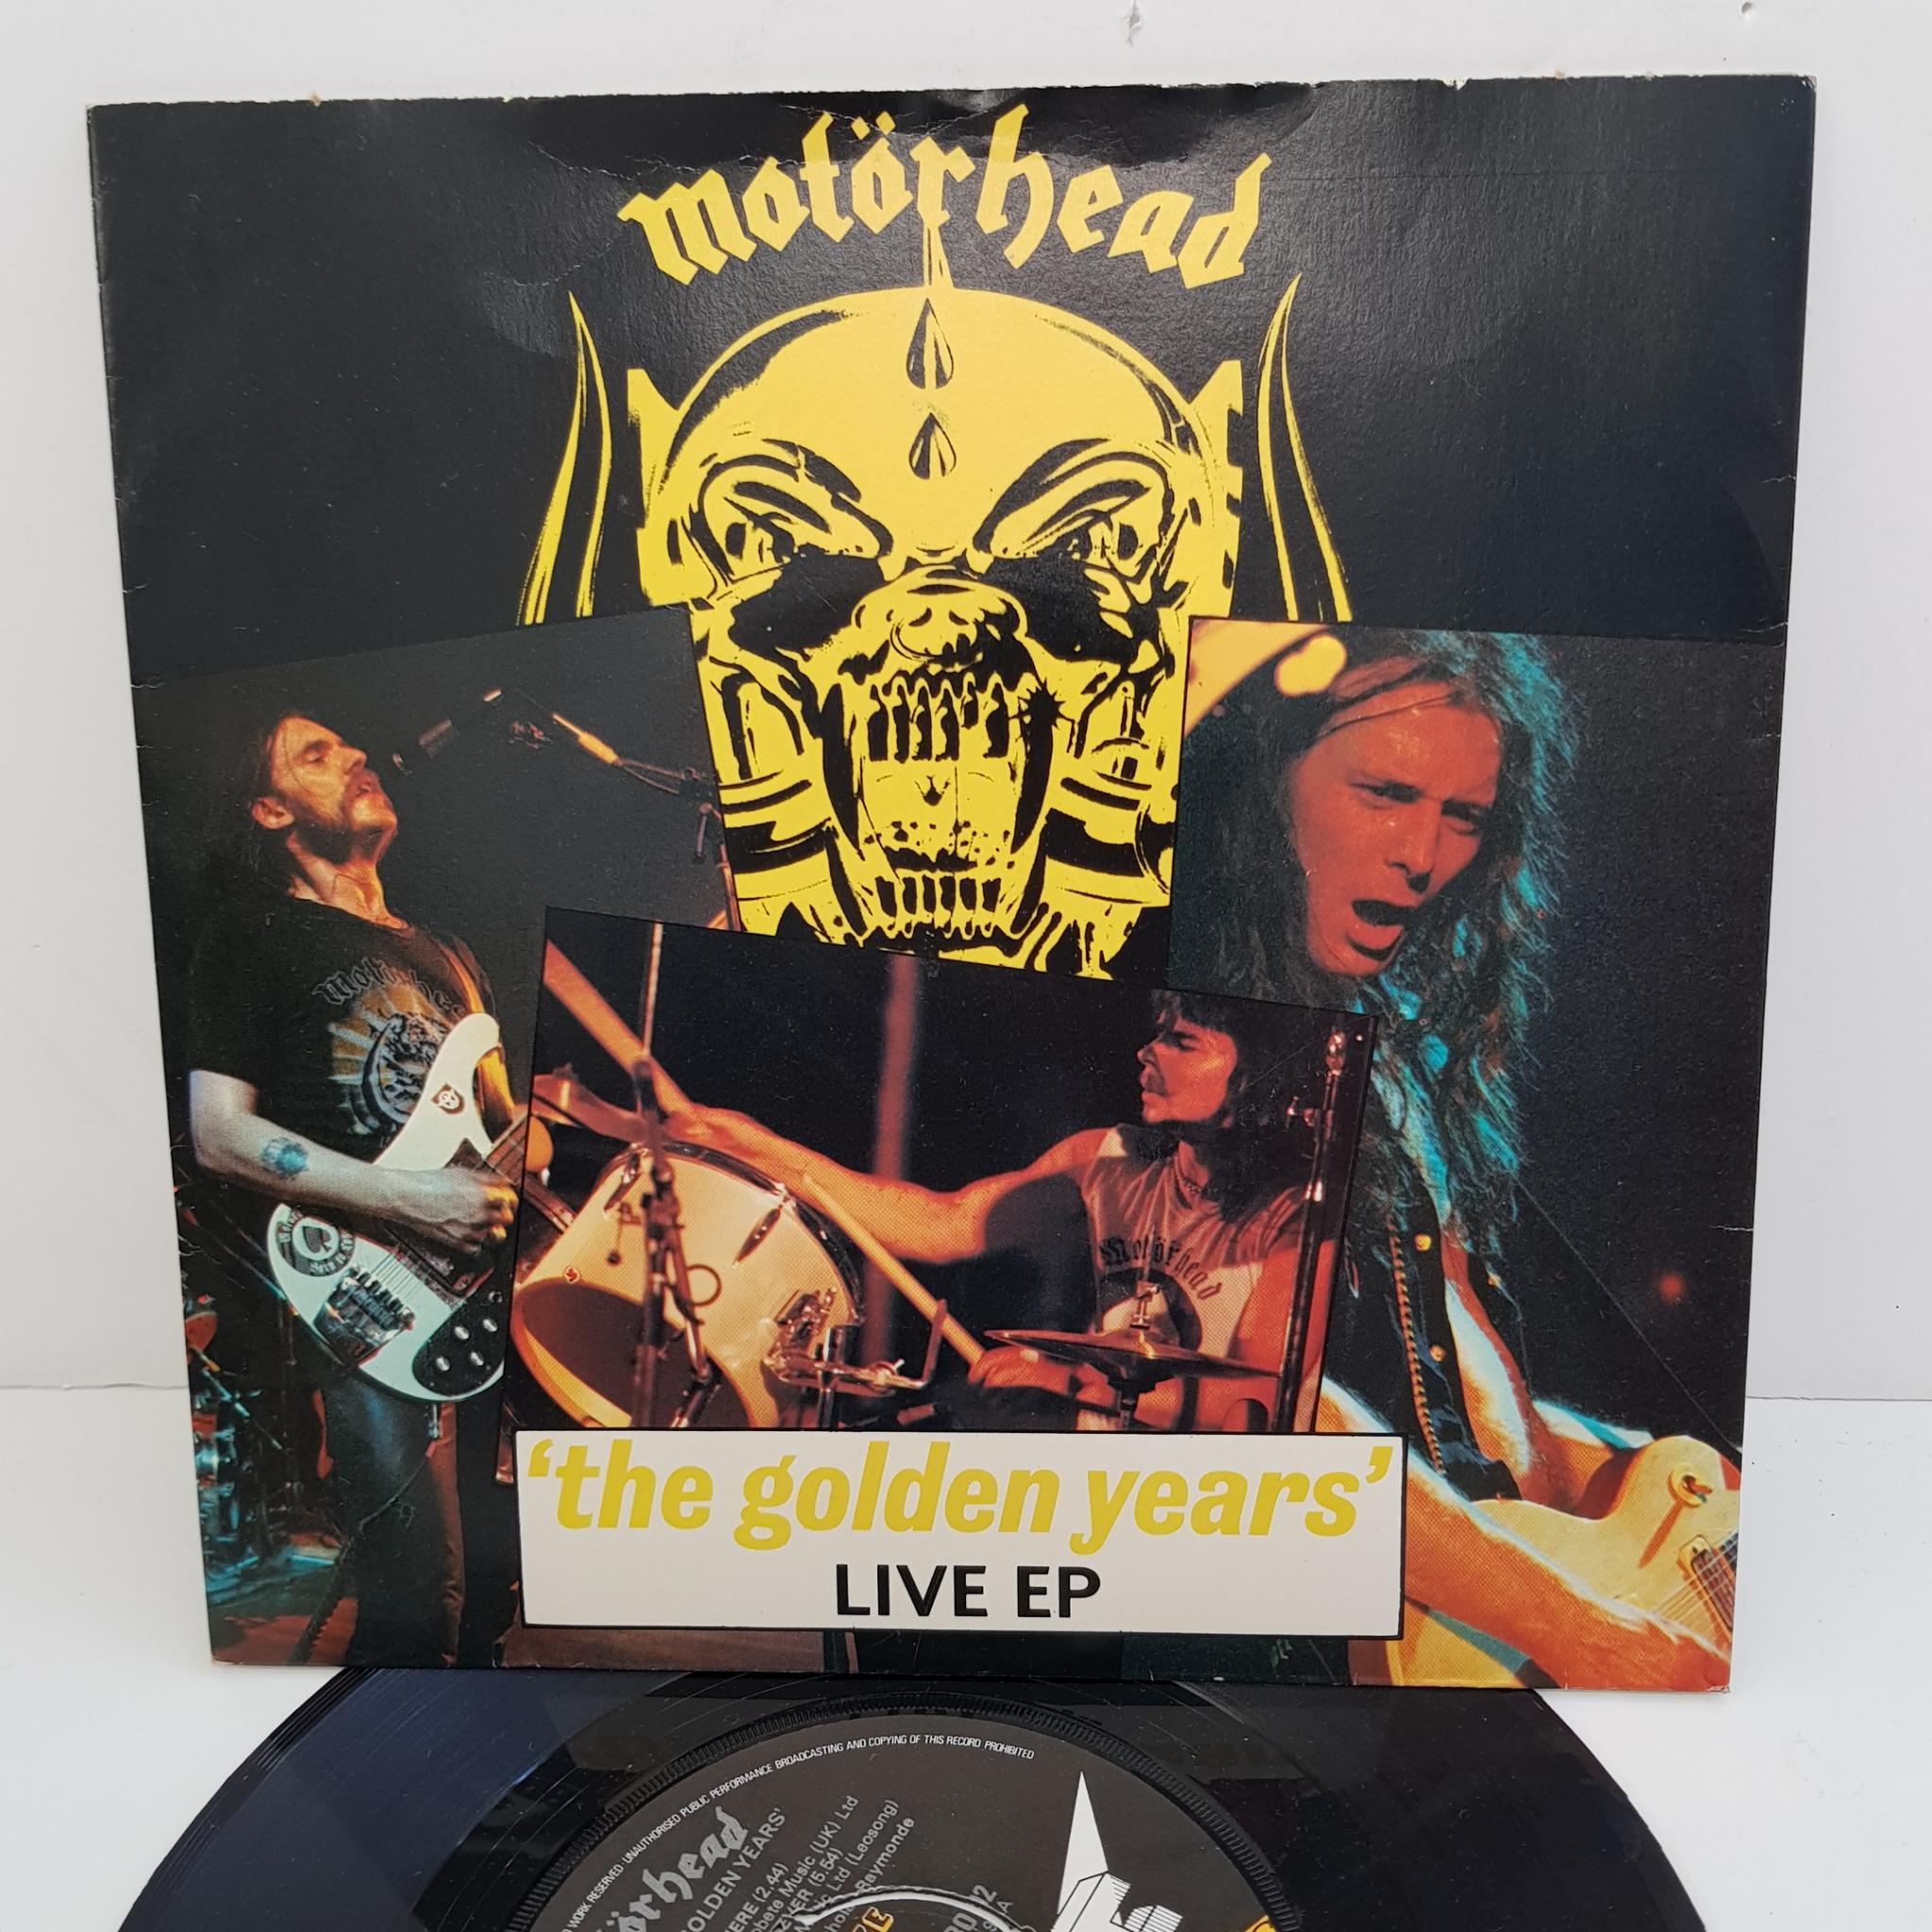 MOTORHEAD - 'The Golden Years' Live EP, 7 inch EP, 4 prong centre  BRO 92,  black/yellow label